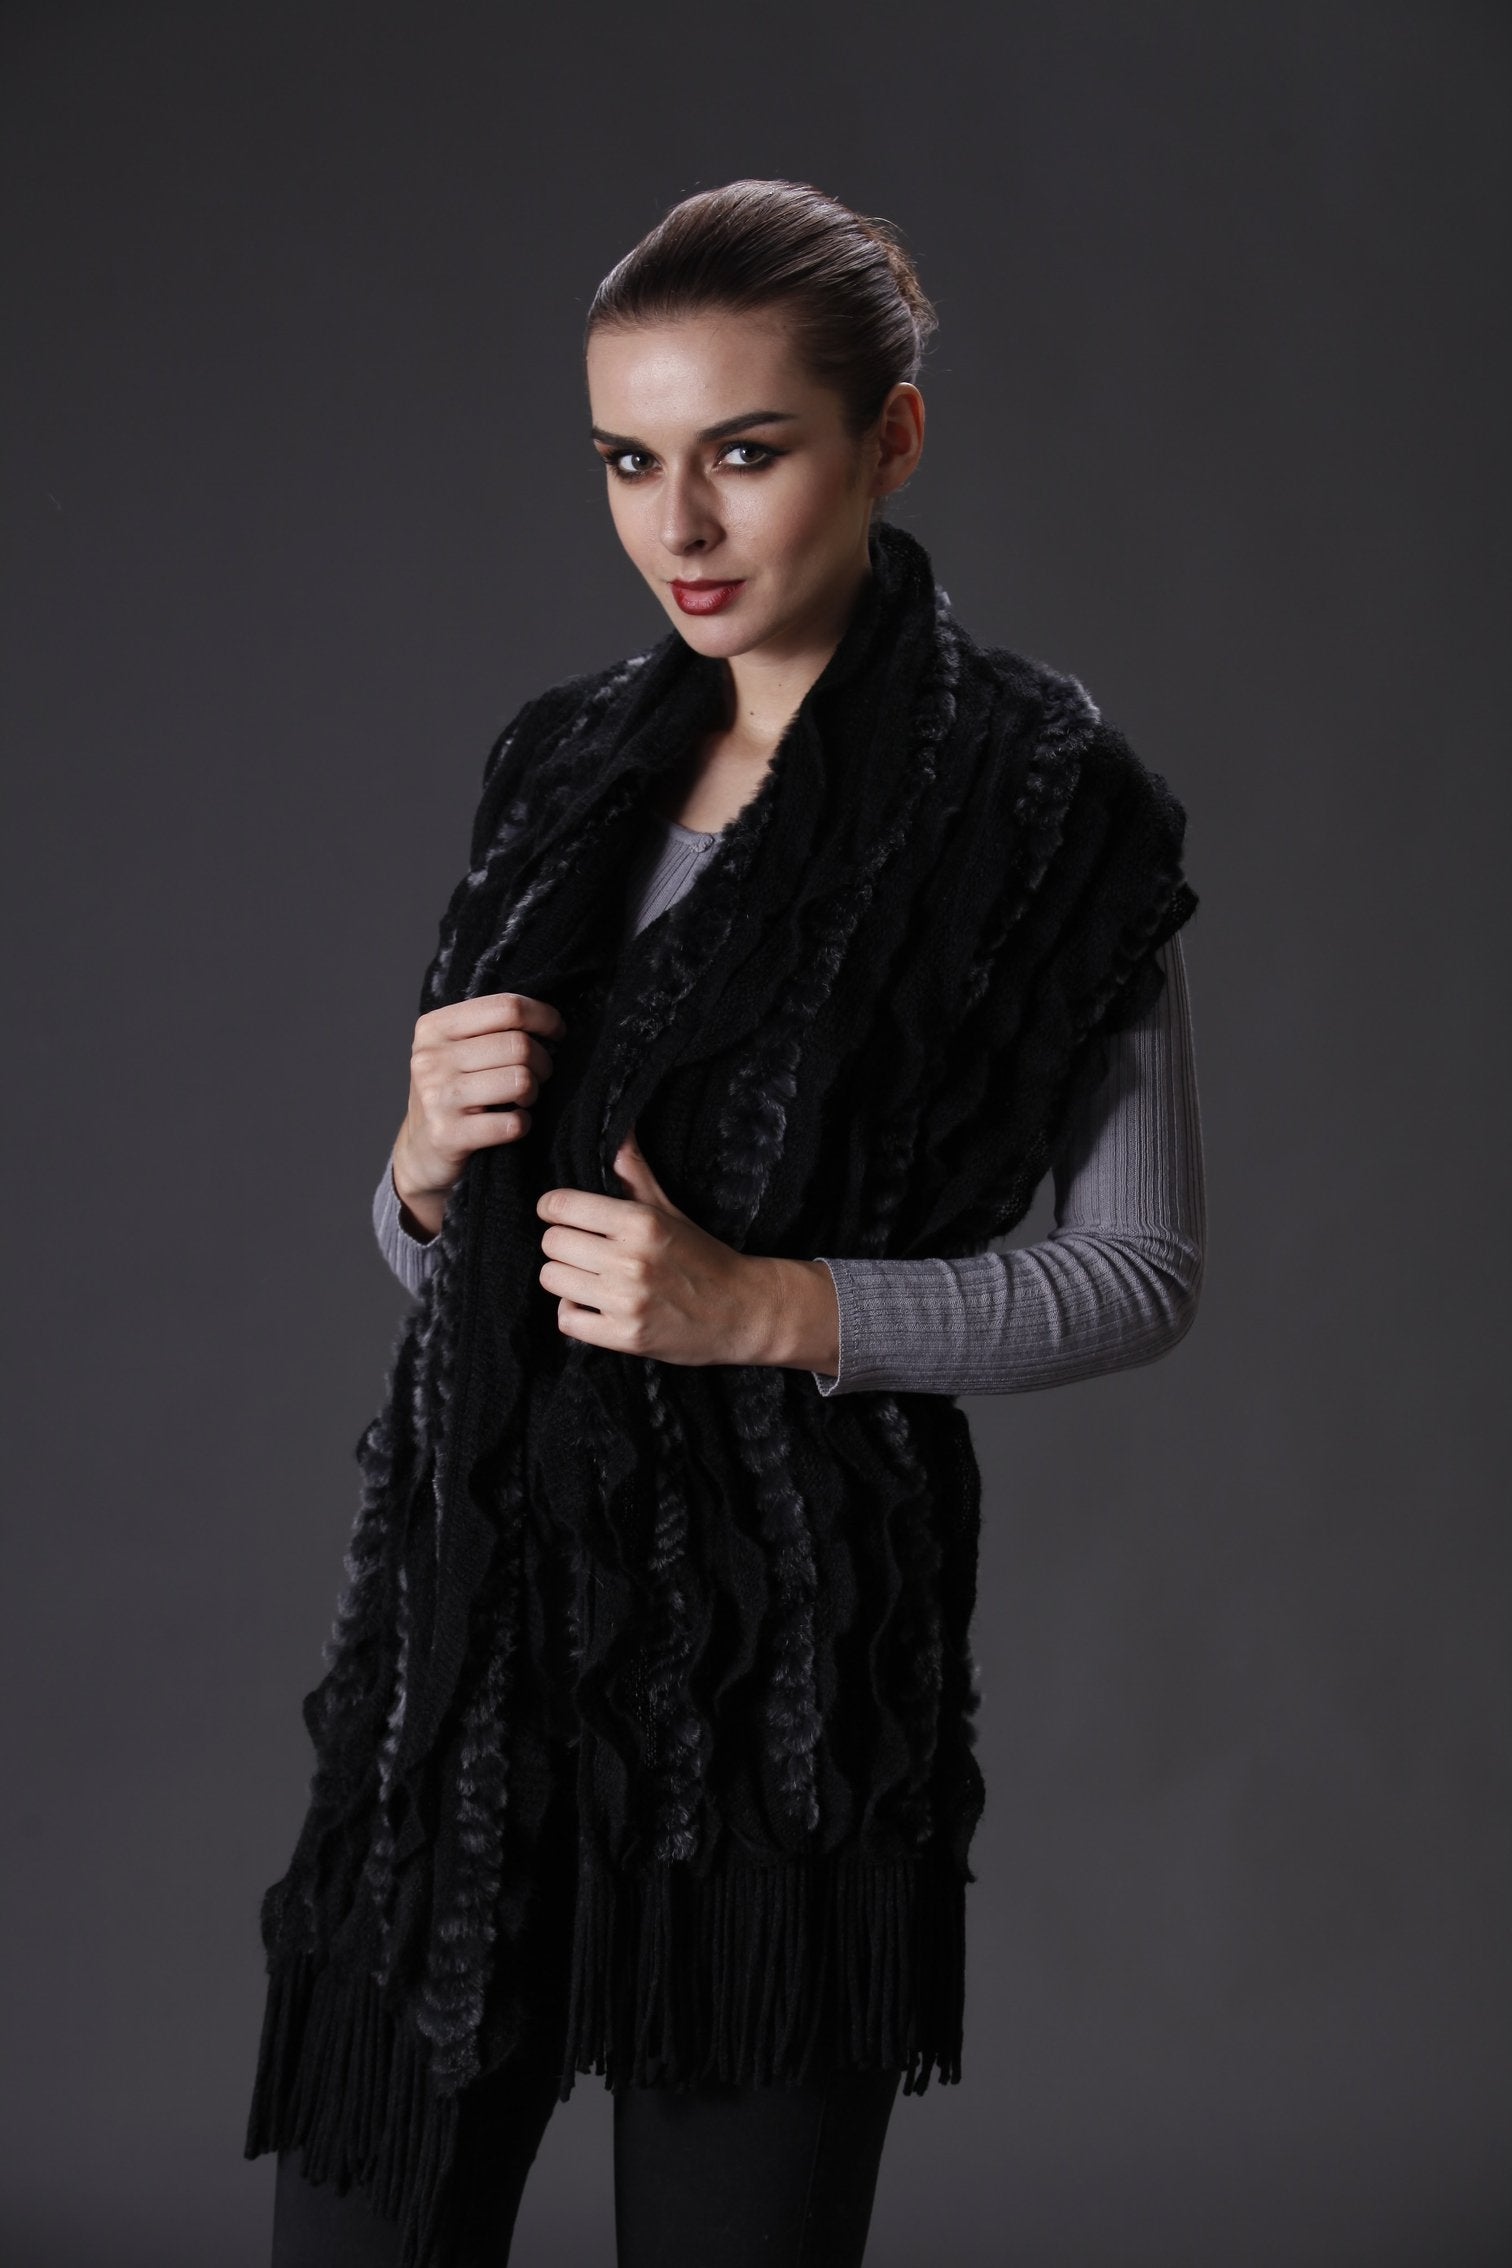 THE INNES Knitted Cashmere Blend Wrap - paulamariecollection